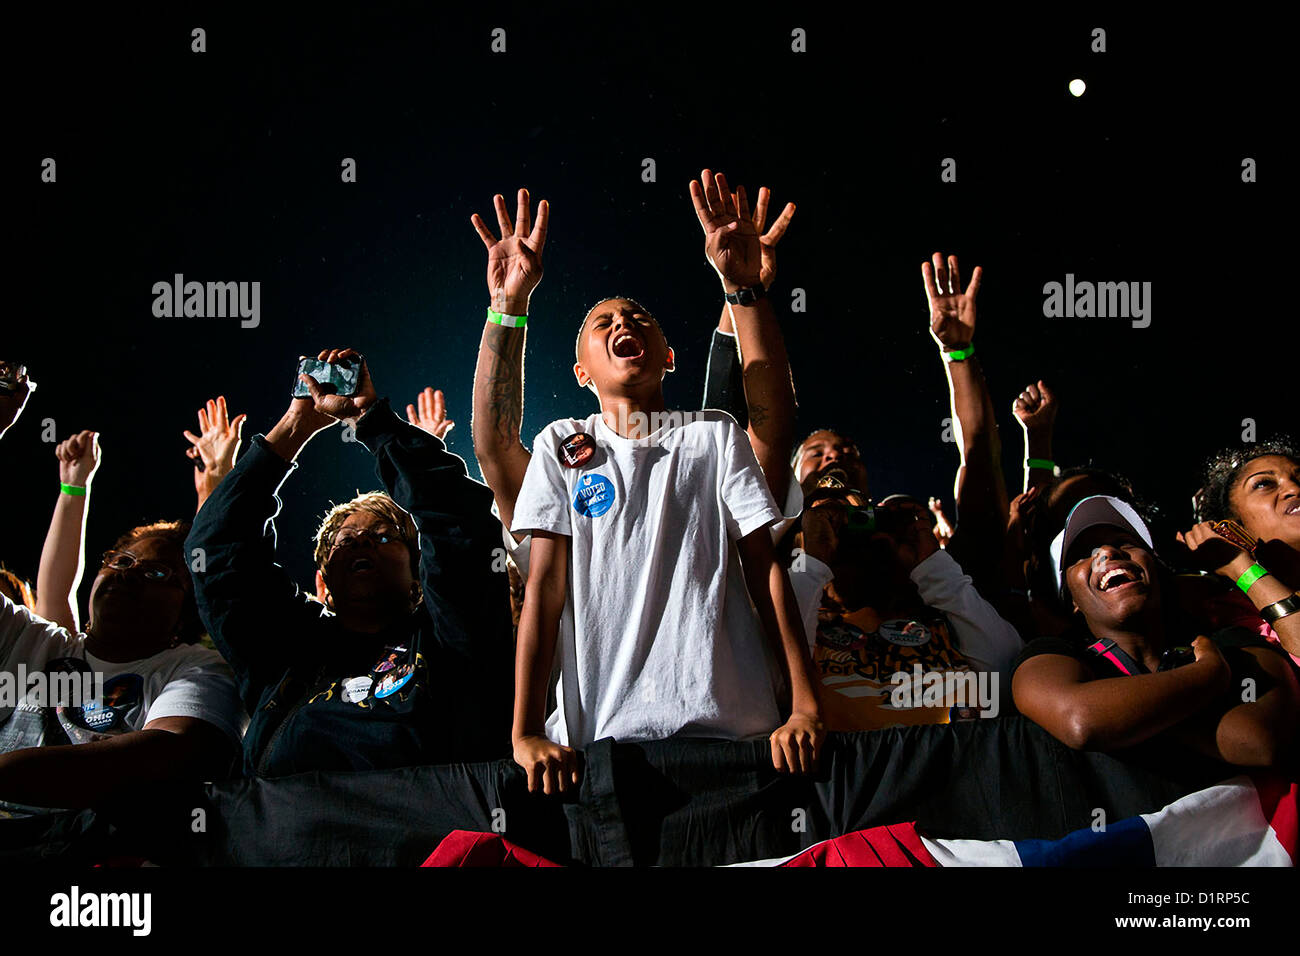 A young boy reacts during a late night campaign rally for President Barack Obama Oct. 25, 2012 in Cleveland, Ohio - Stock Image